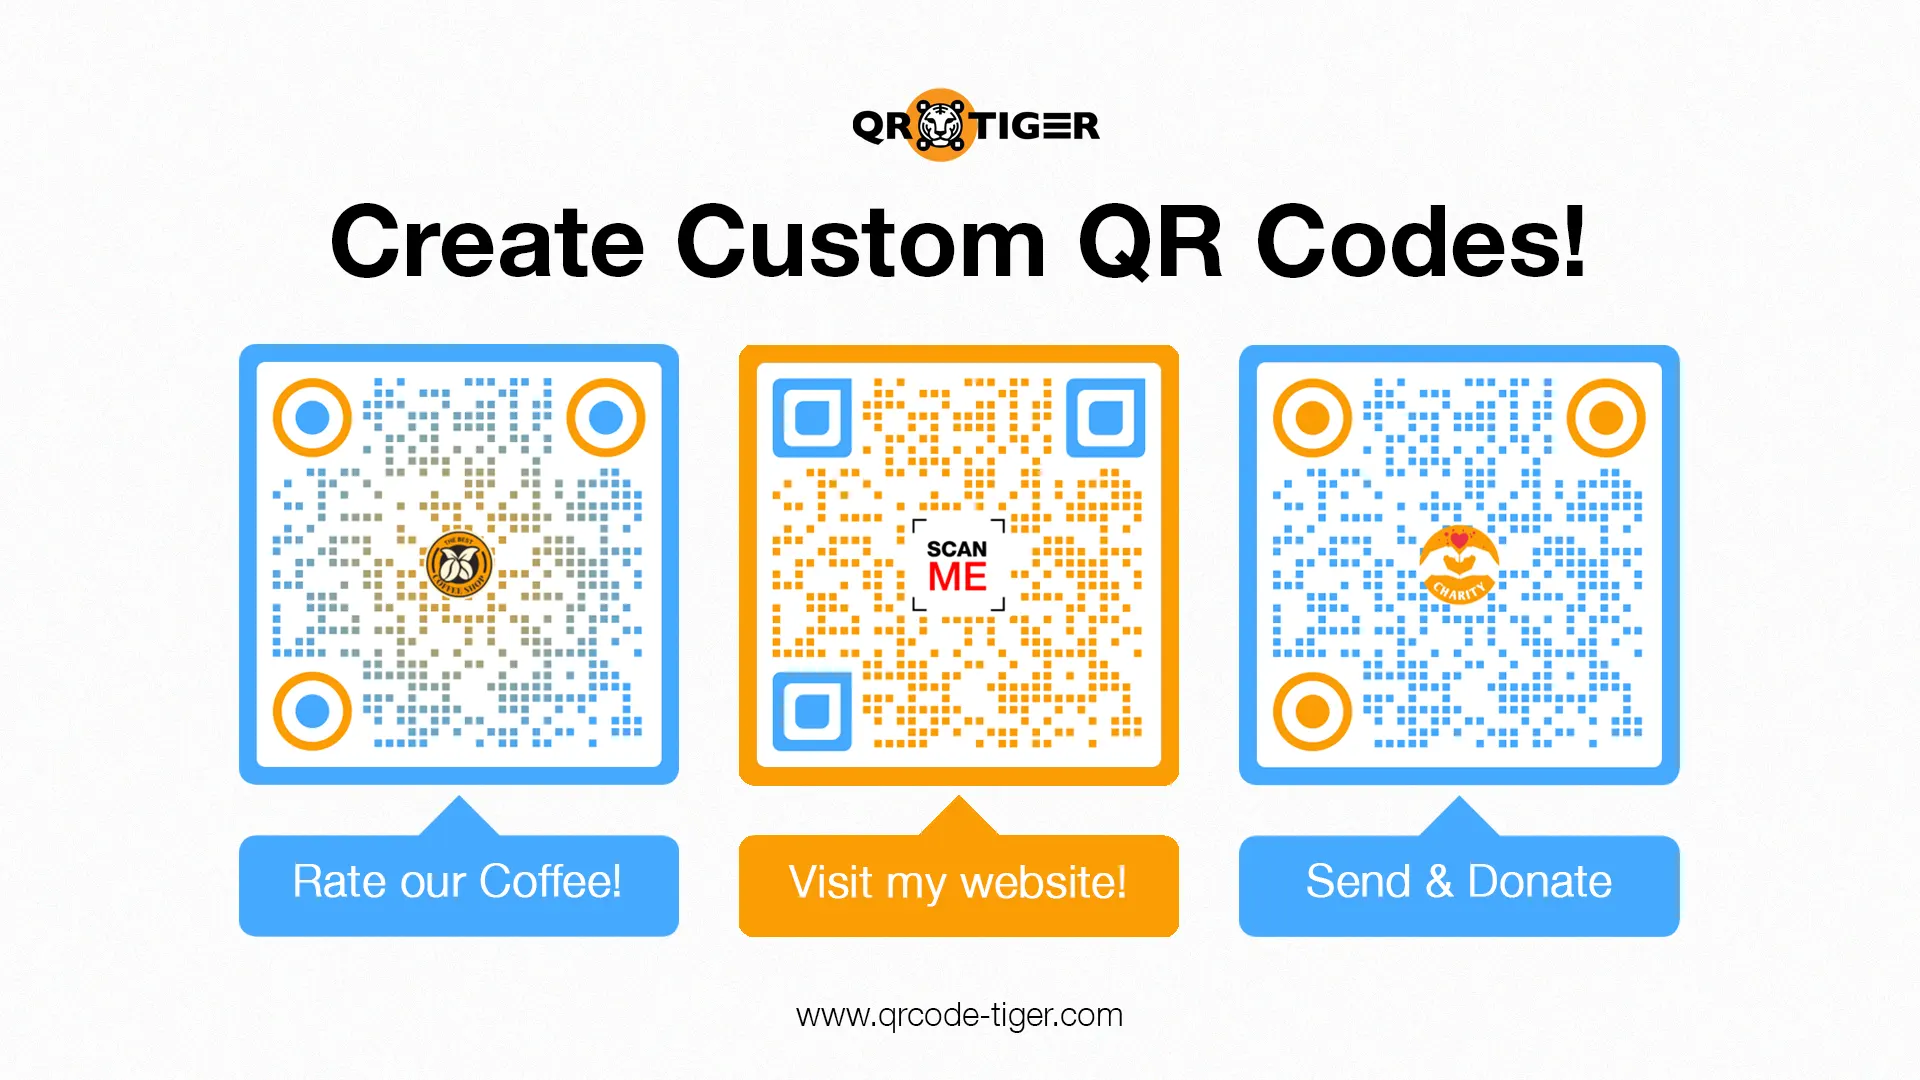 visual qr codes in qr codes on poster